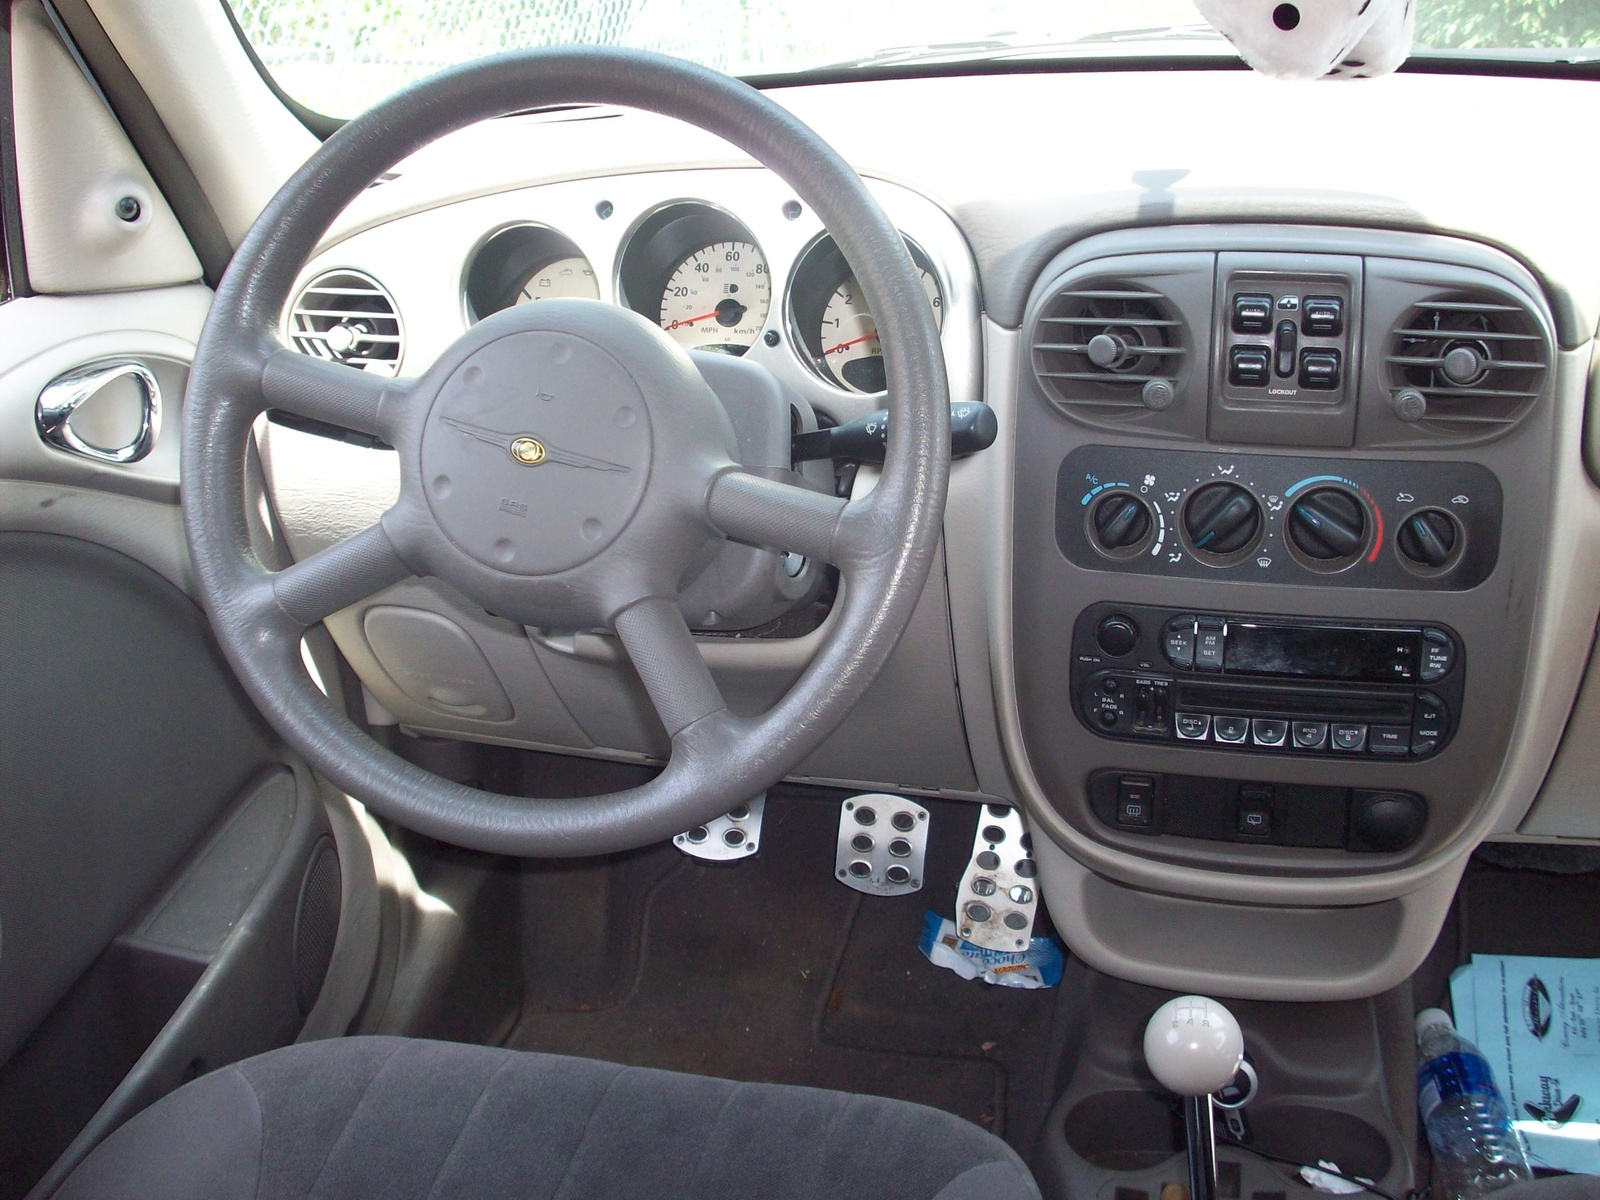 2002 chrysler pt cruiser - interior pictures